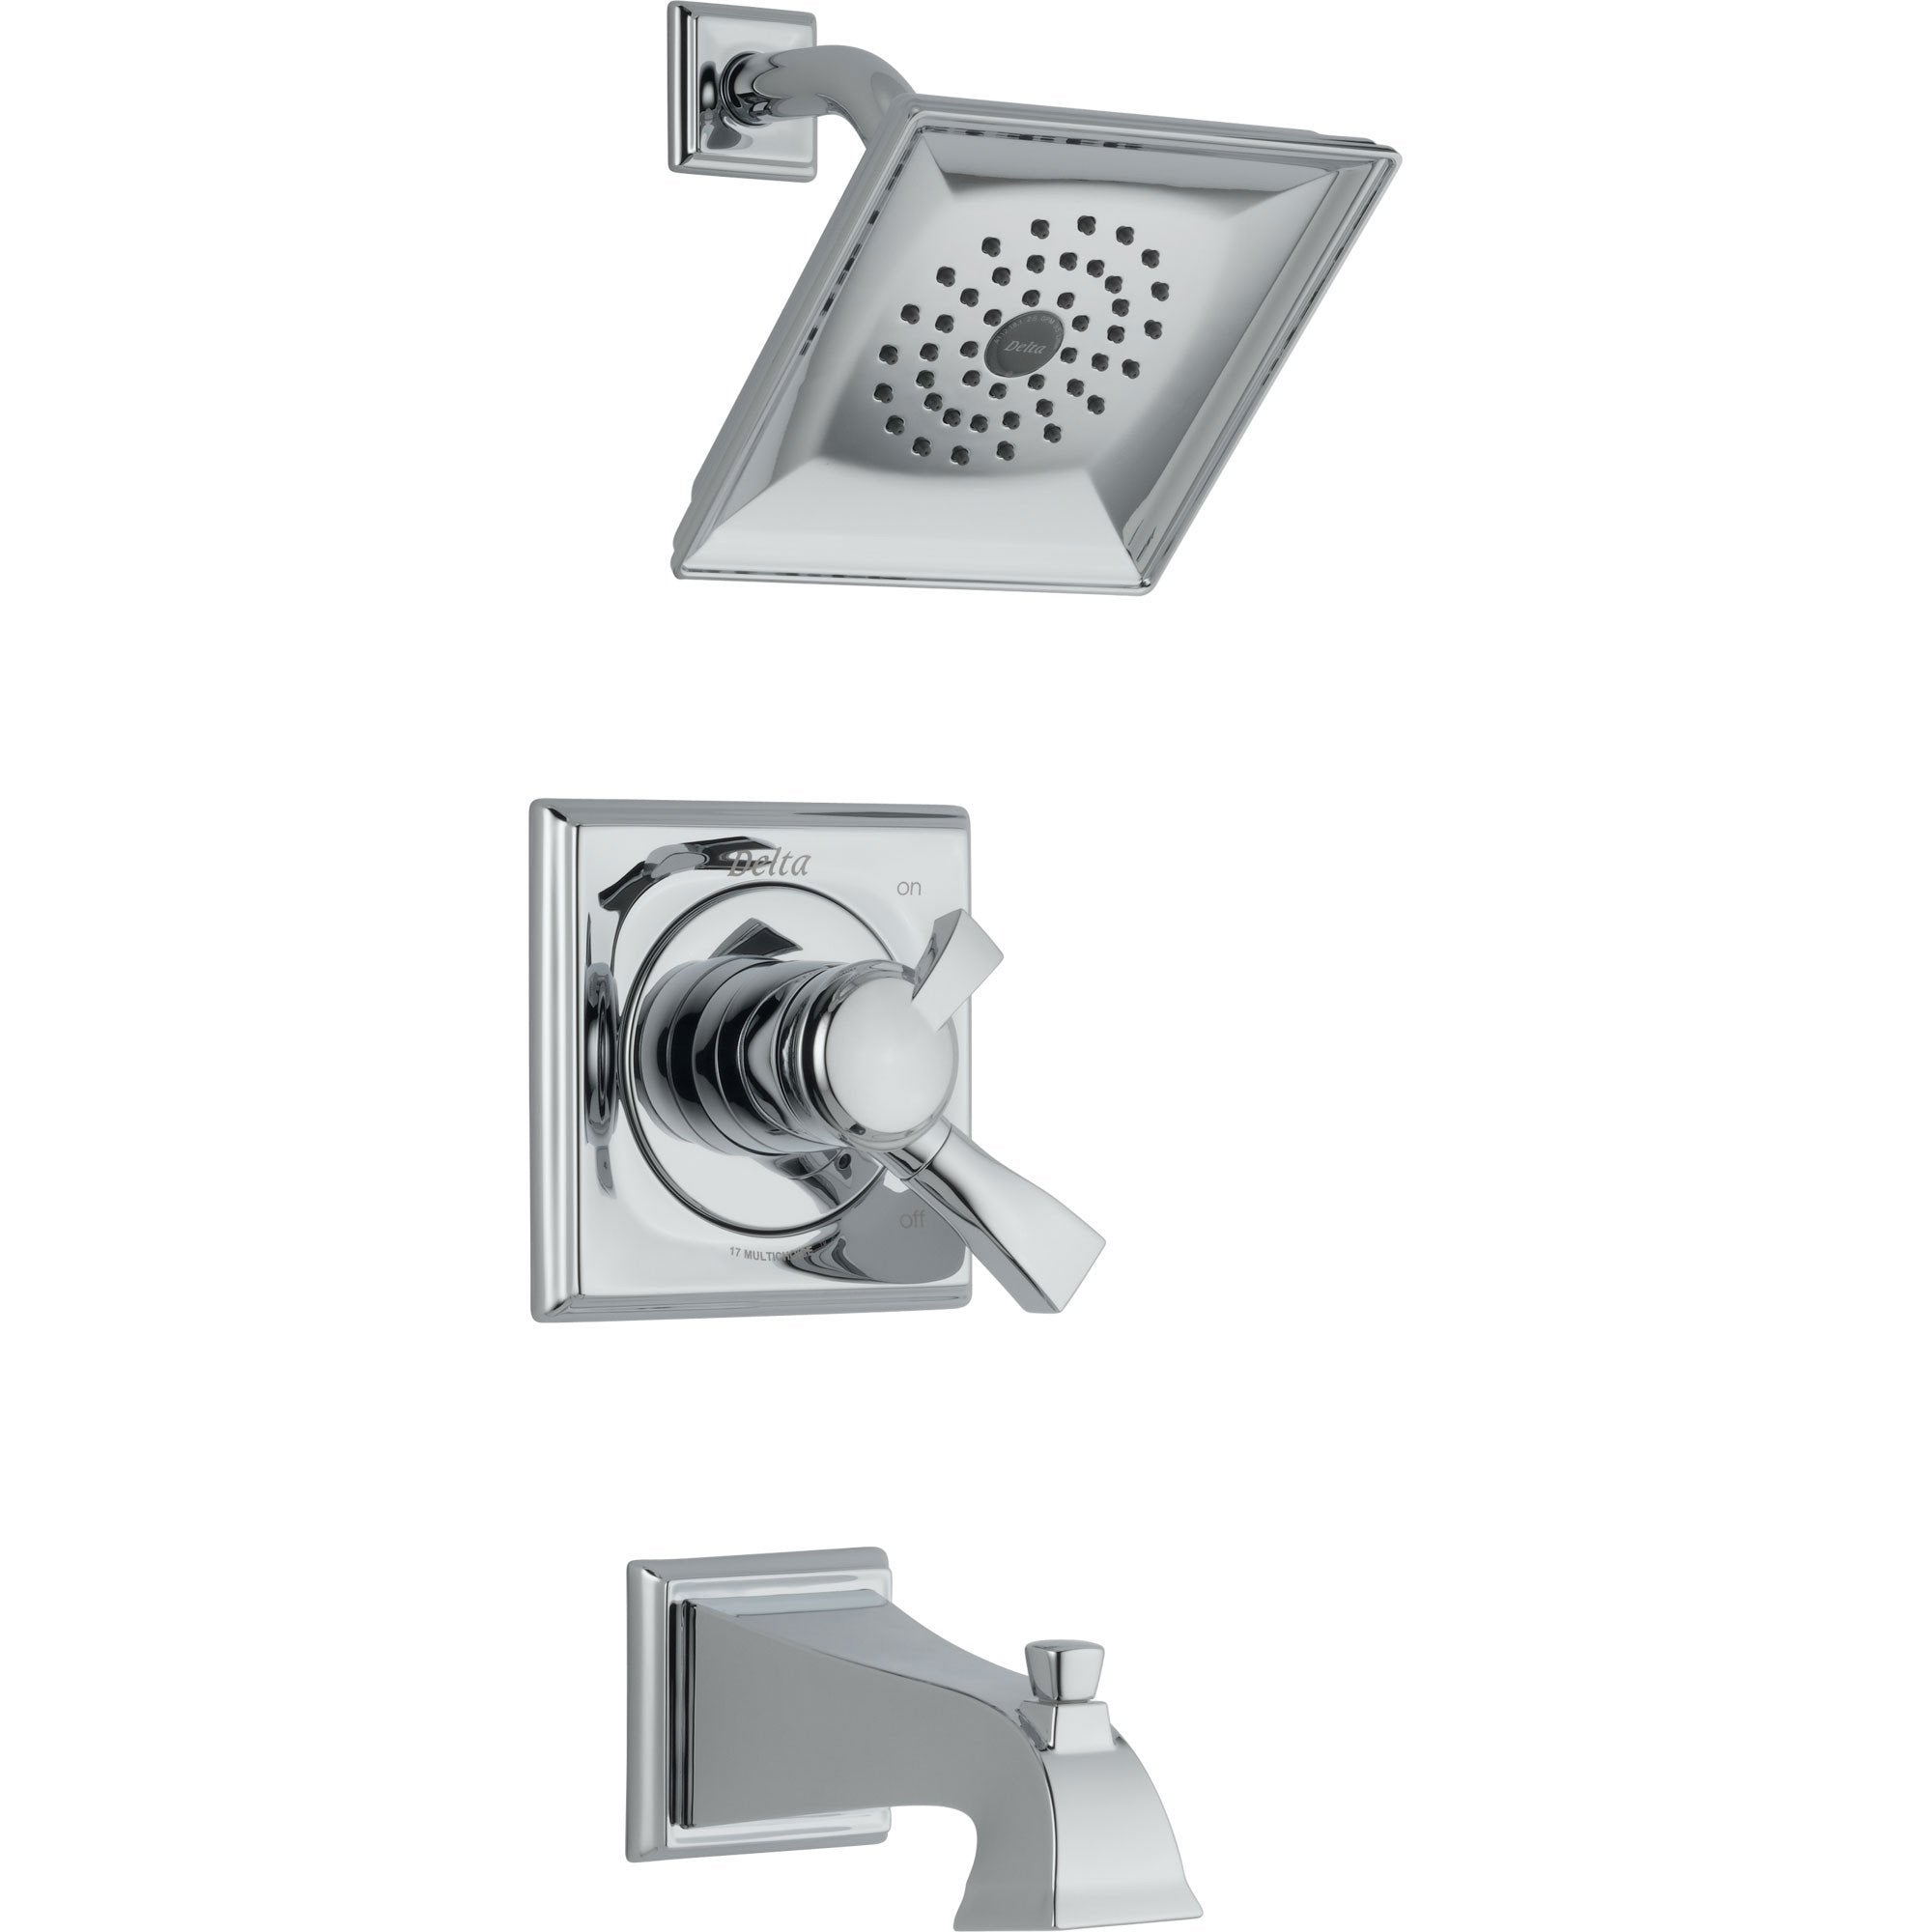 Delta Dryden Dual Control Chrome Tub and Shower Combination with Valve D417V